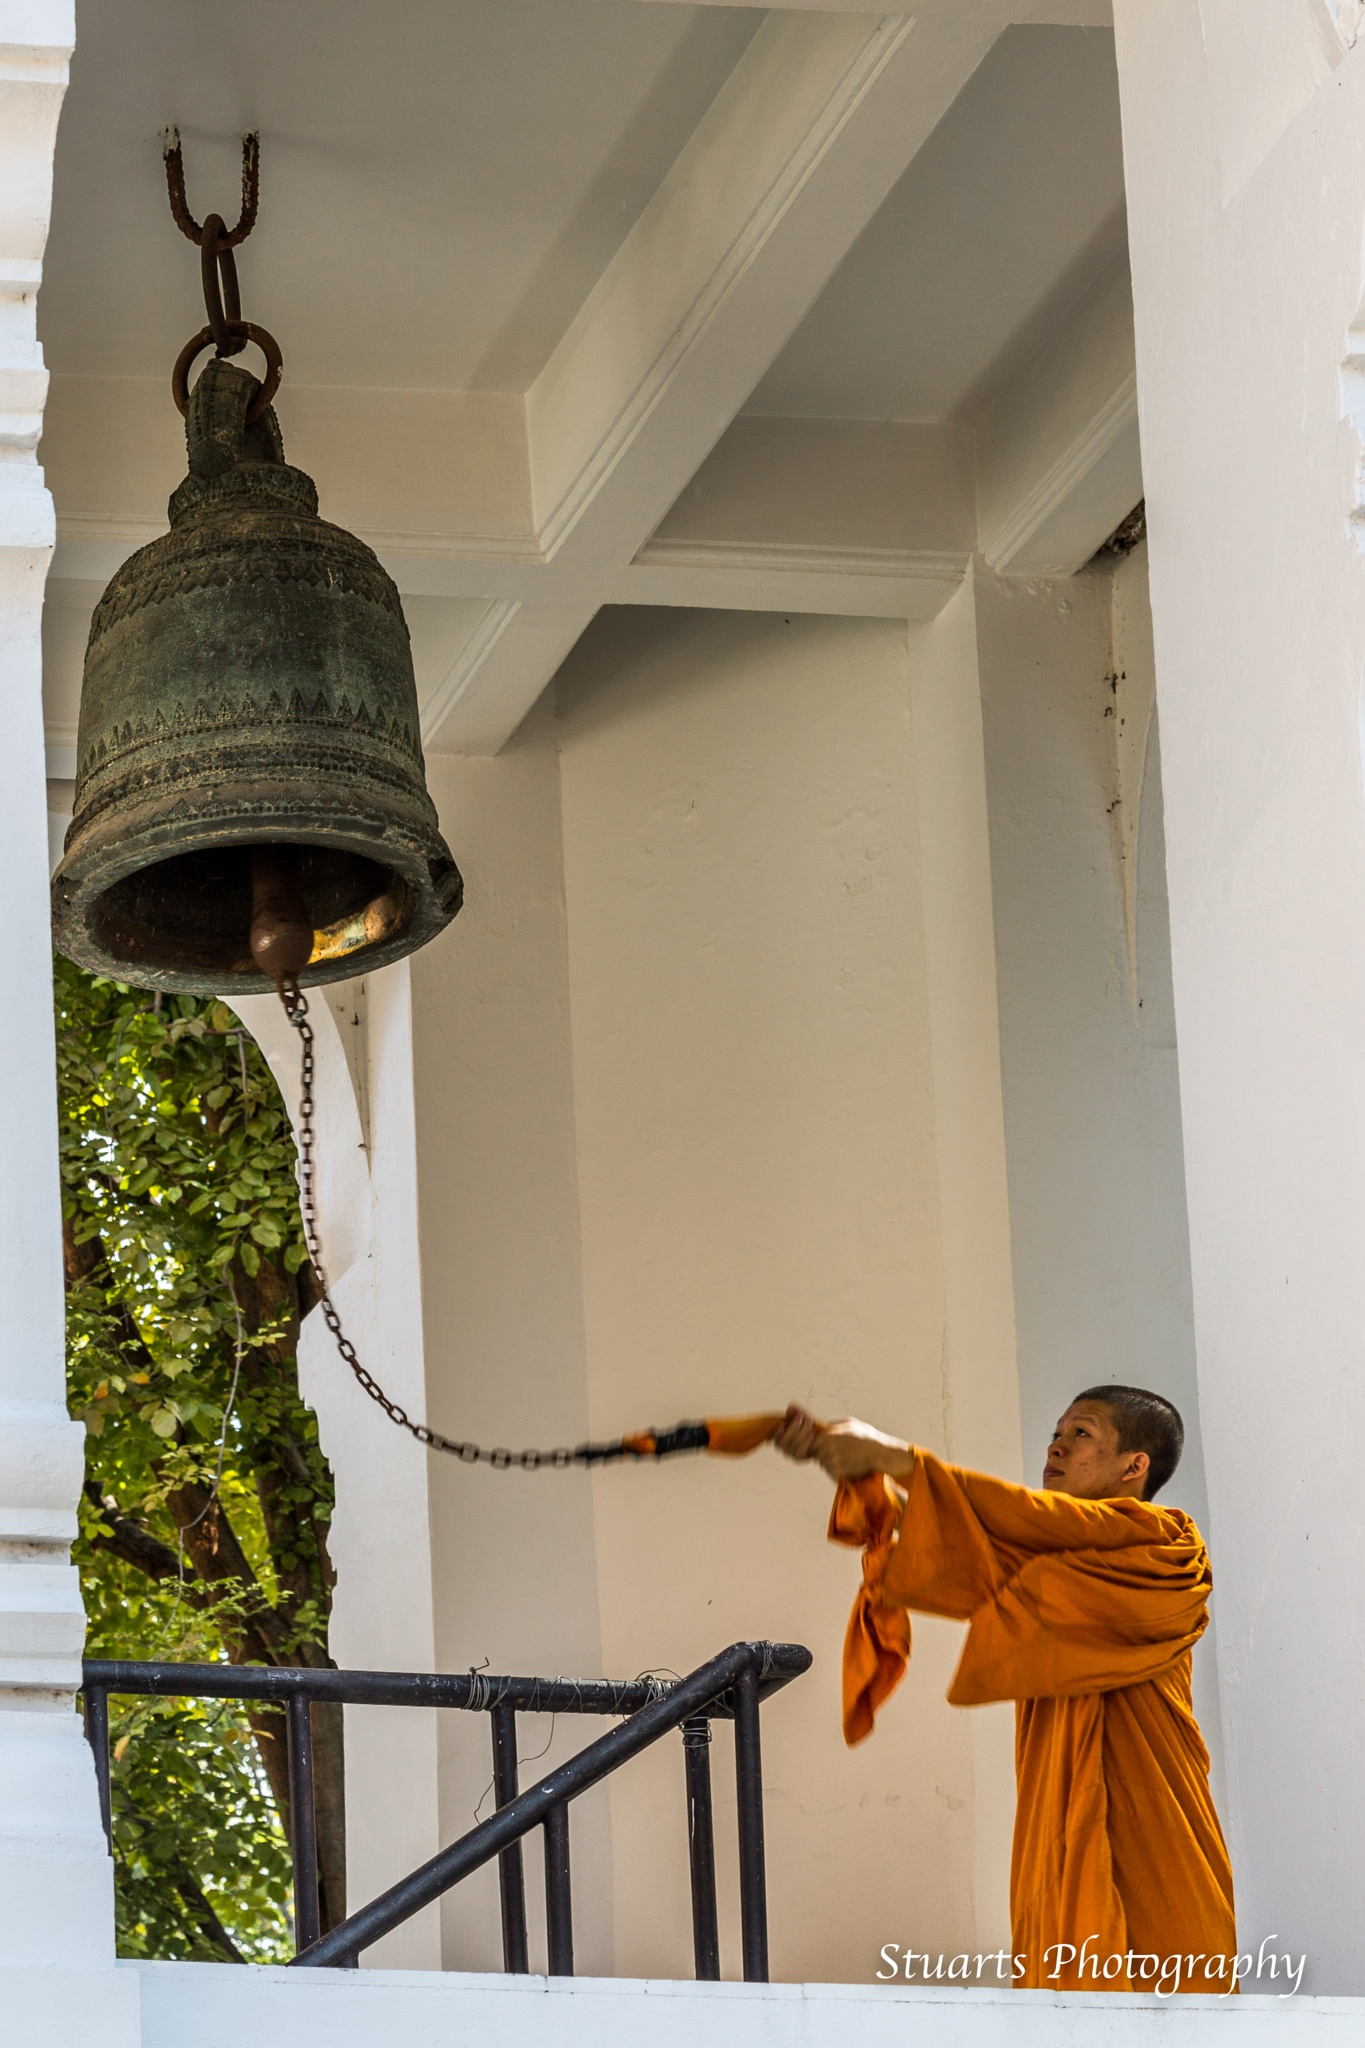 Bell ringing monk by Stuart Jamieson